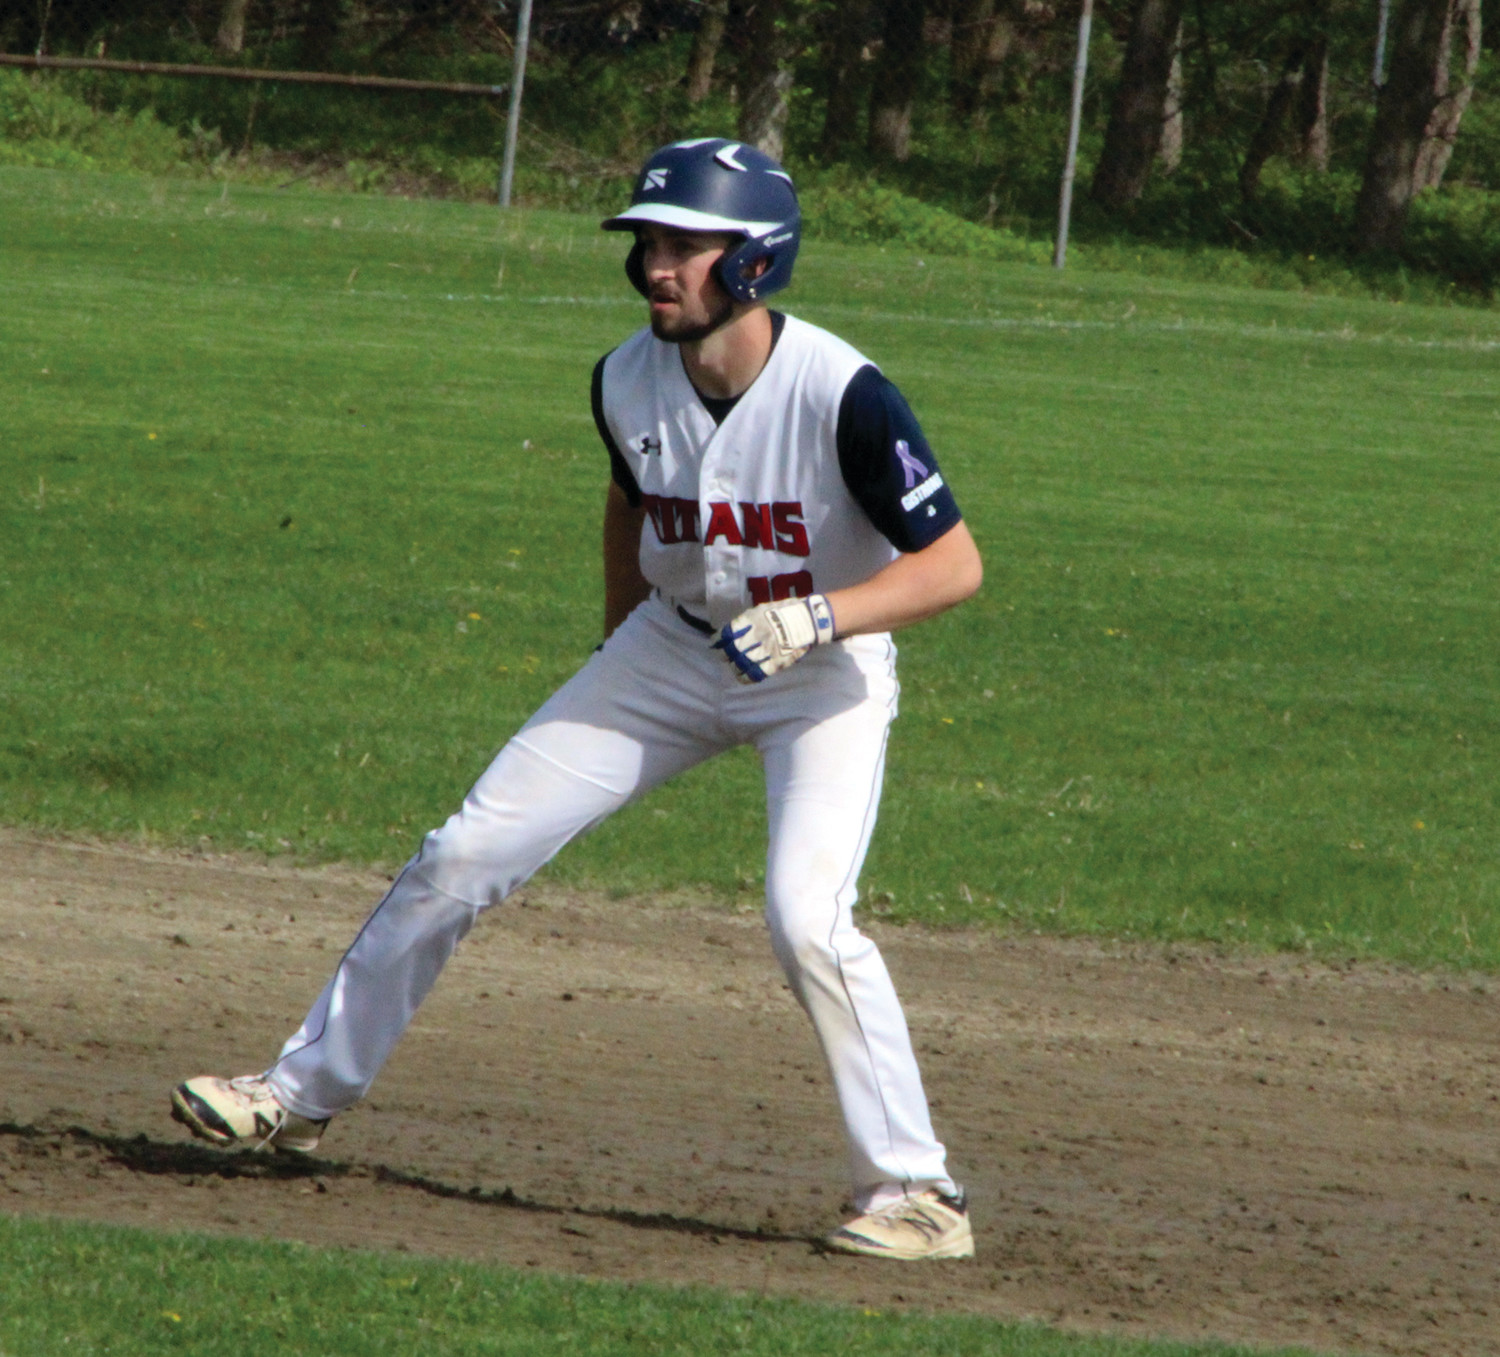 IN THE LEAD: Toll Gate's Andrew Ekroth takes a lead on second base.